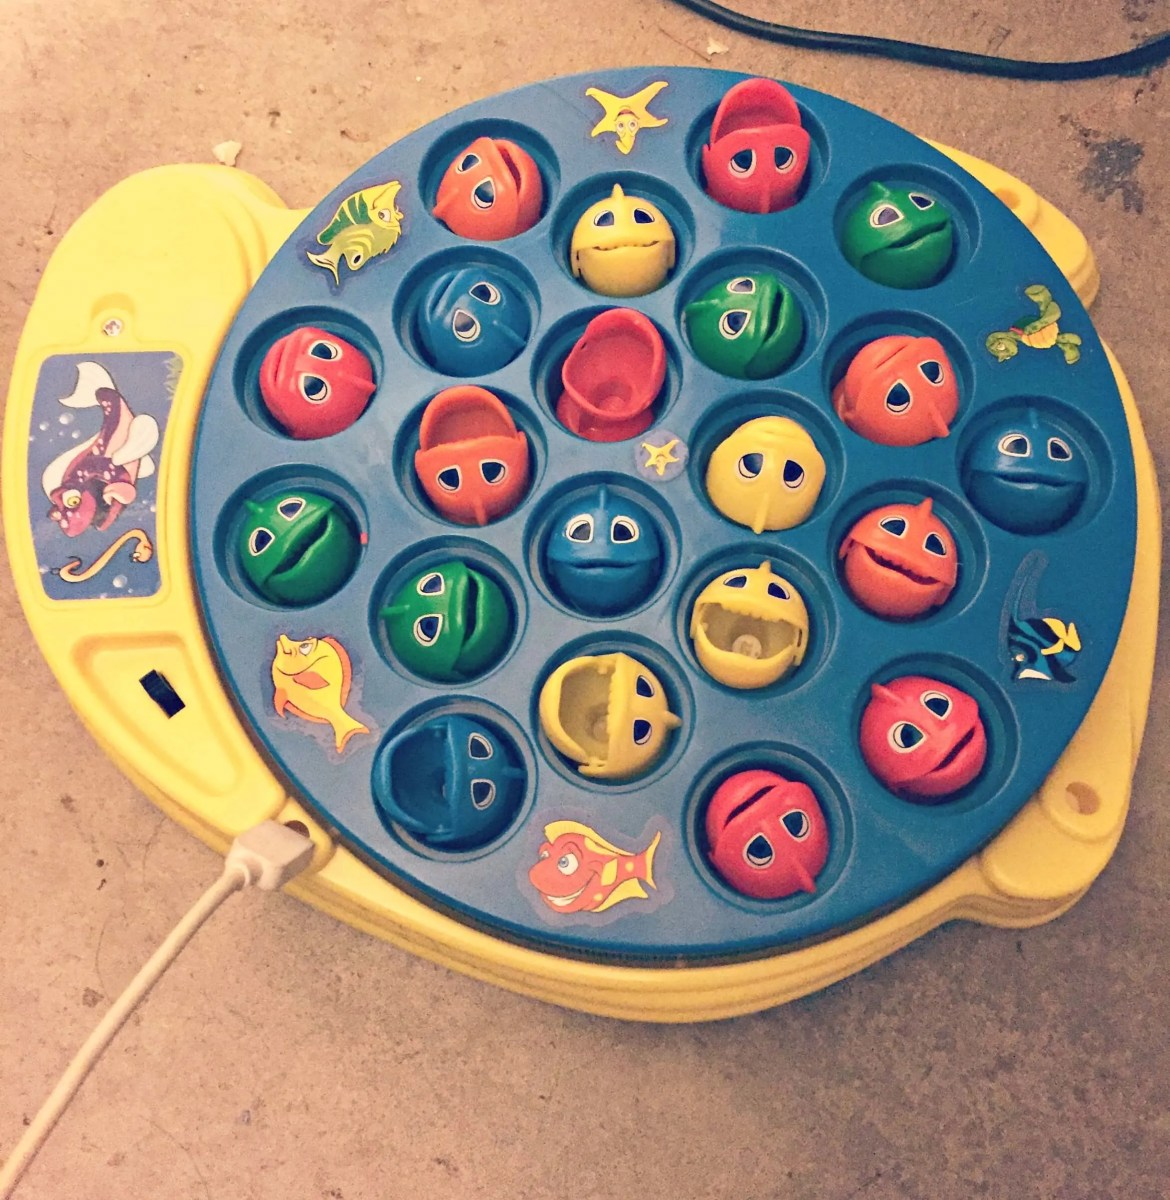 The post about when my daughter with Down syndrome connected this charger to her fishing game